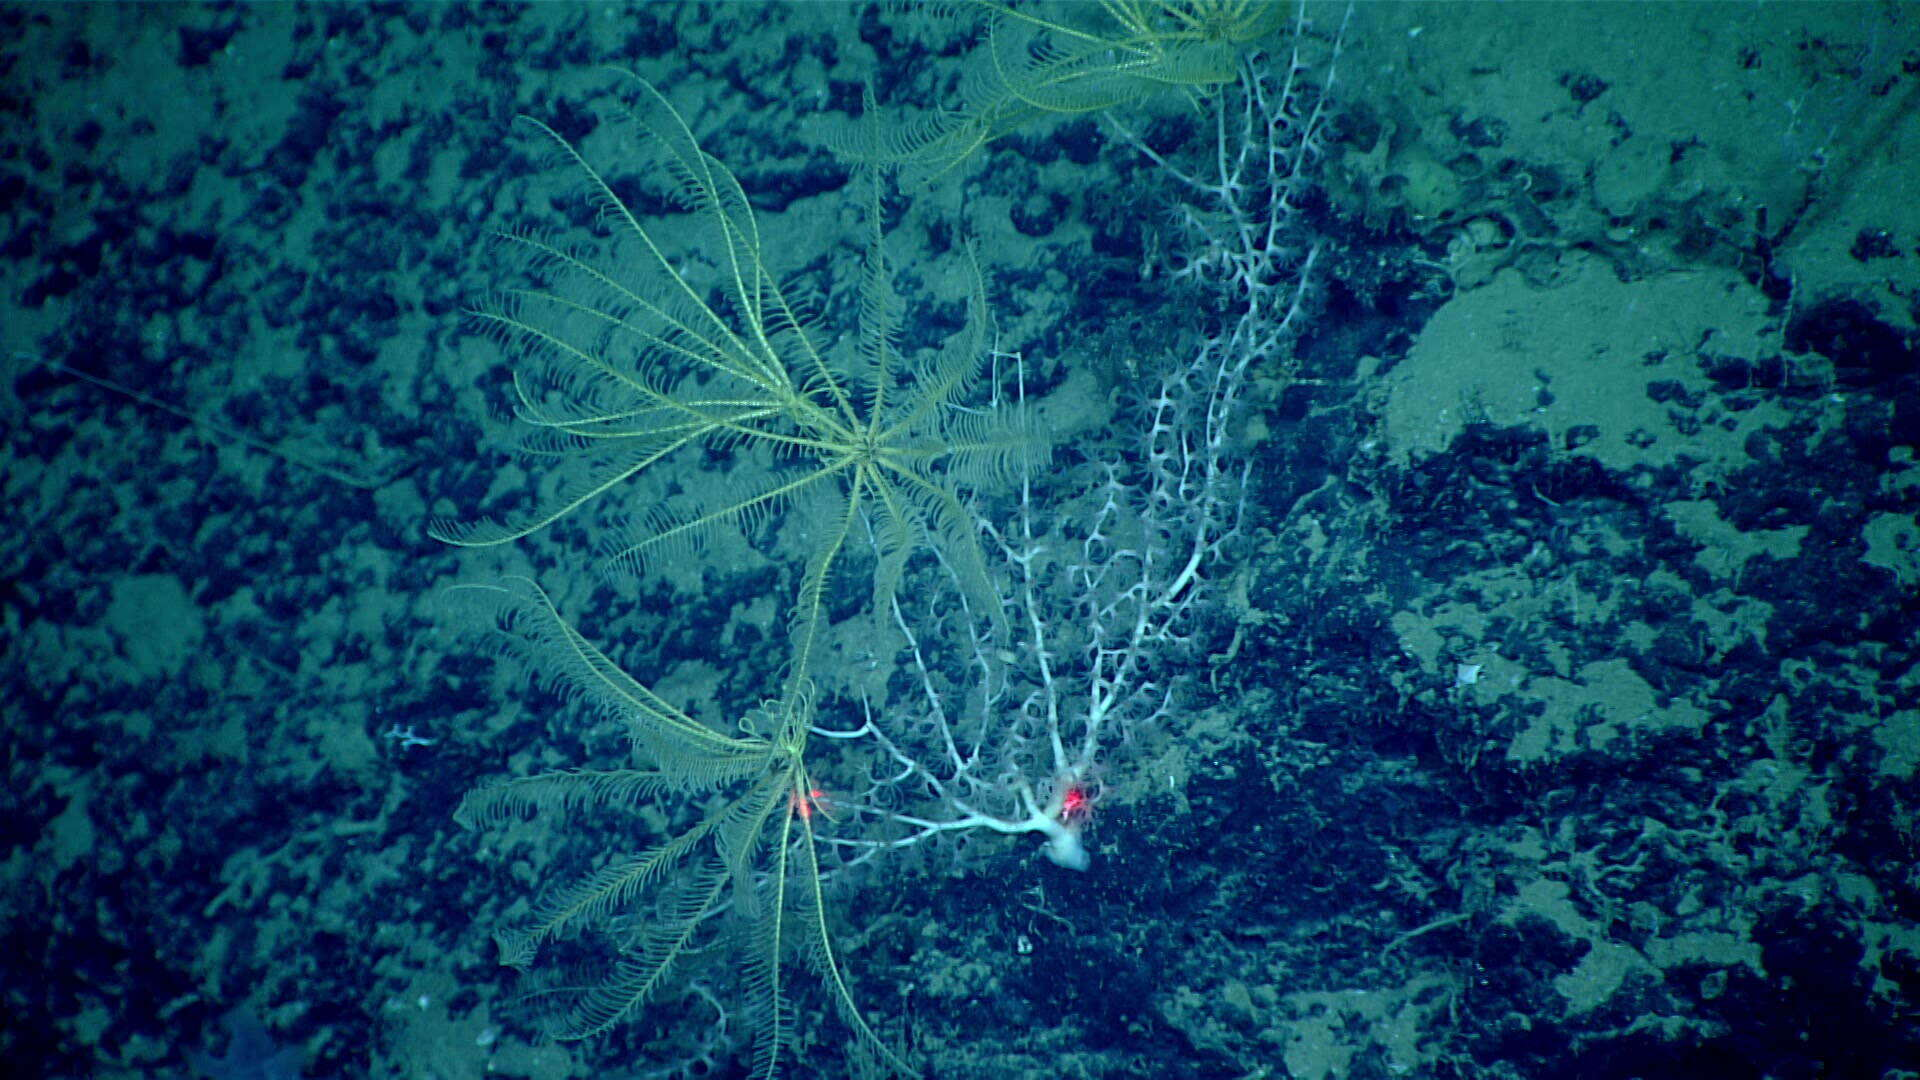 Image of crinoids and relatives